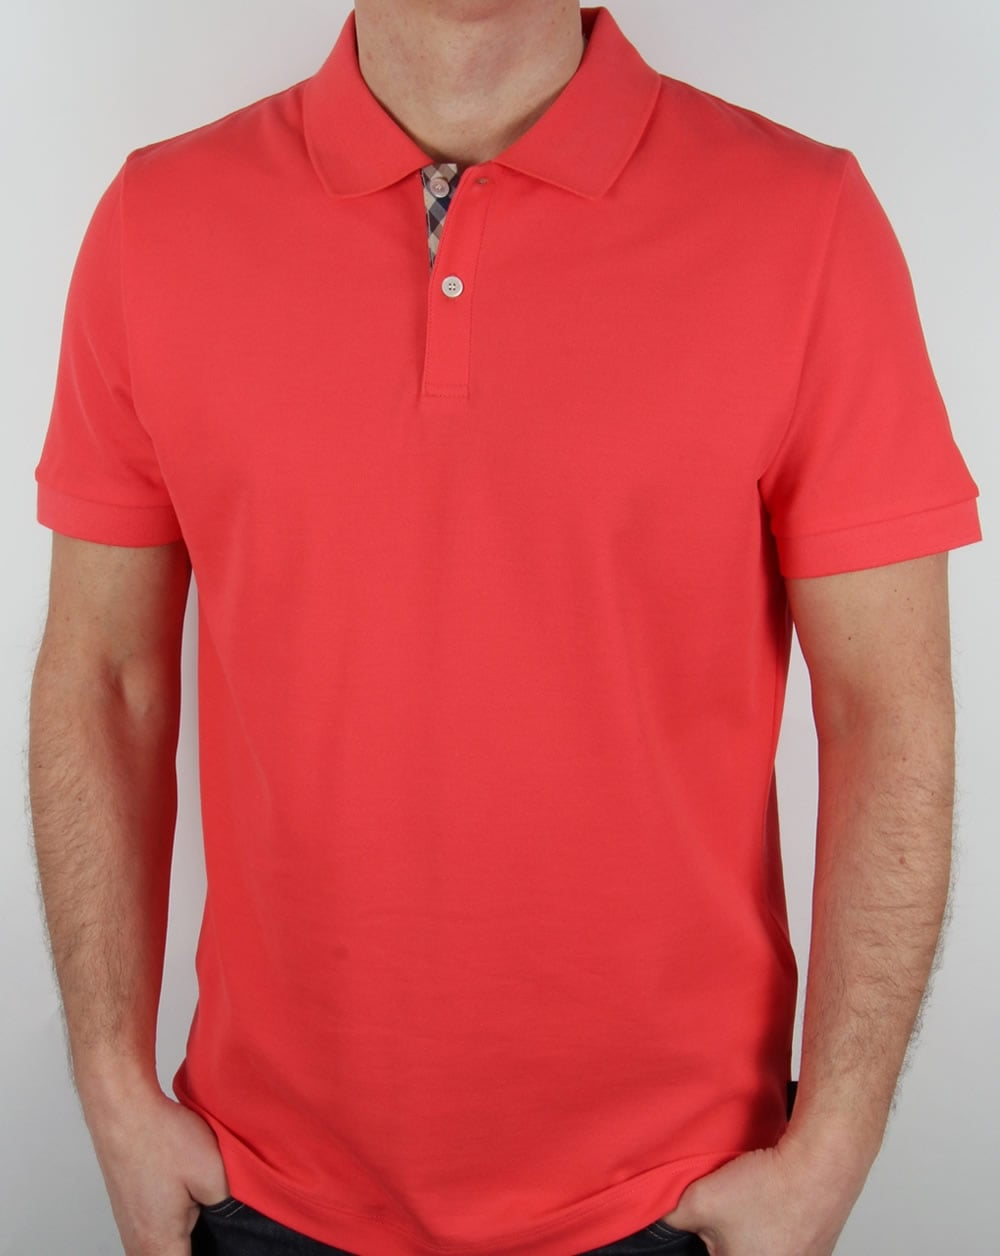 aquascutum hector polo shirt coral pique cotton short